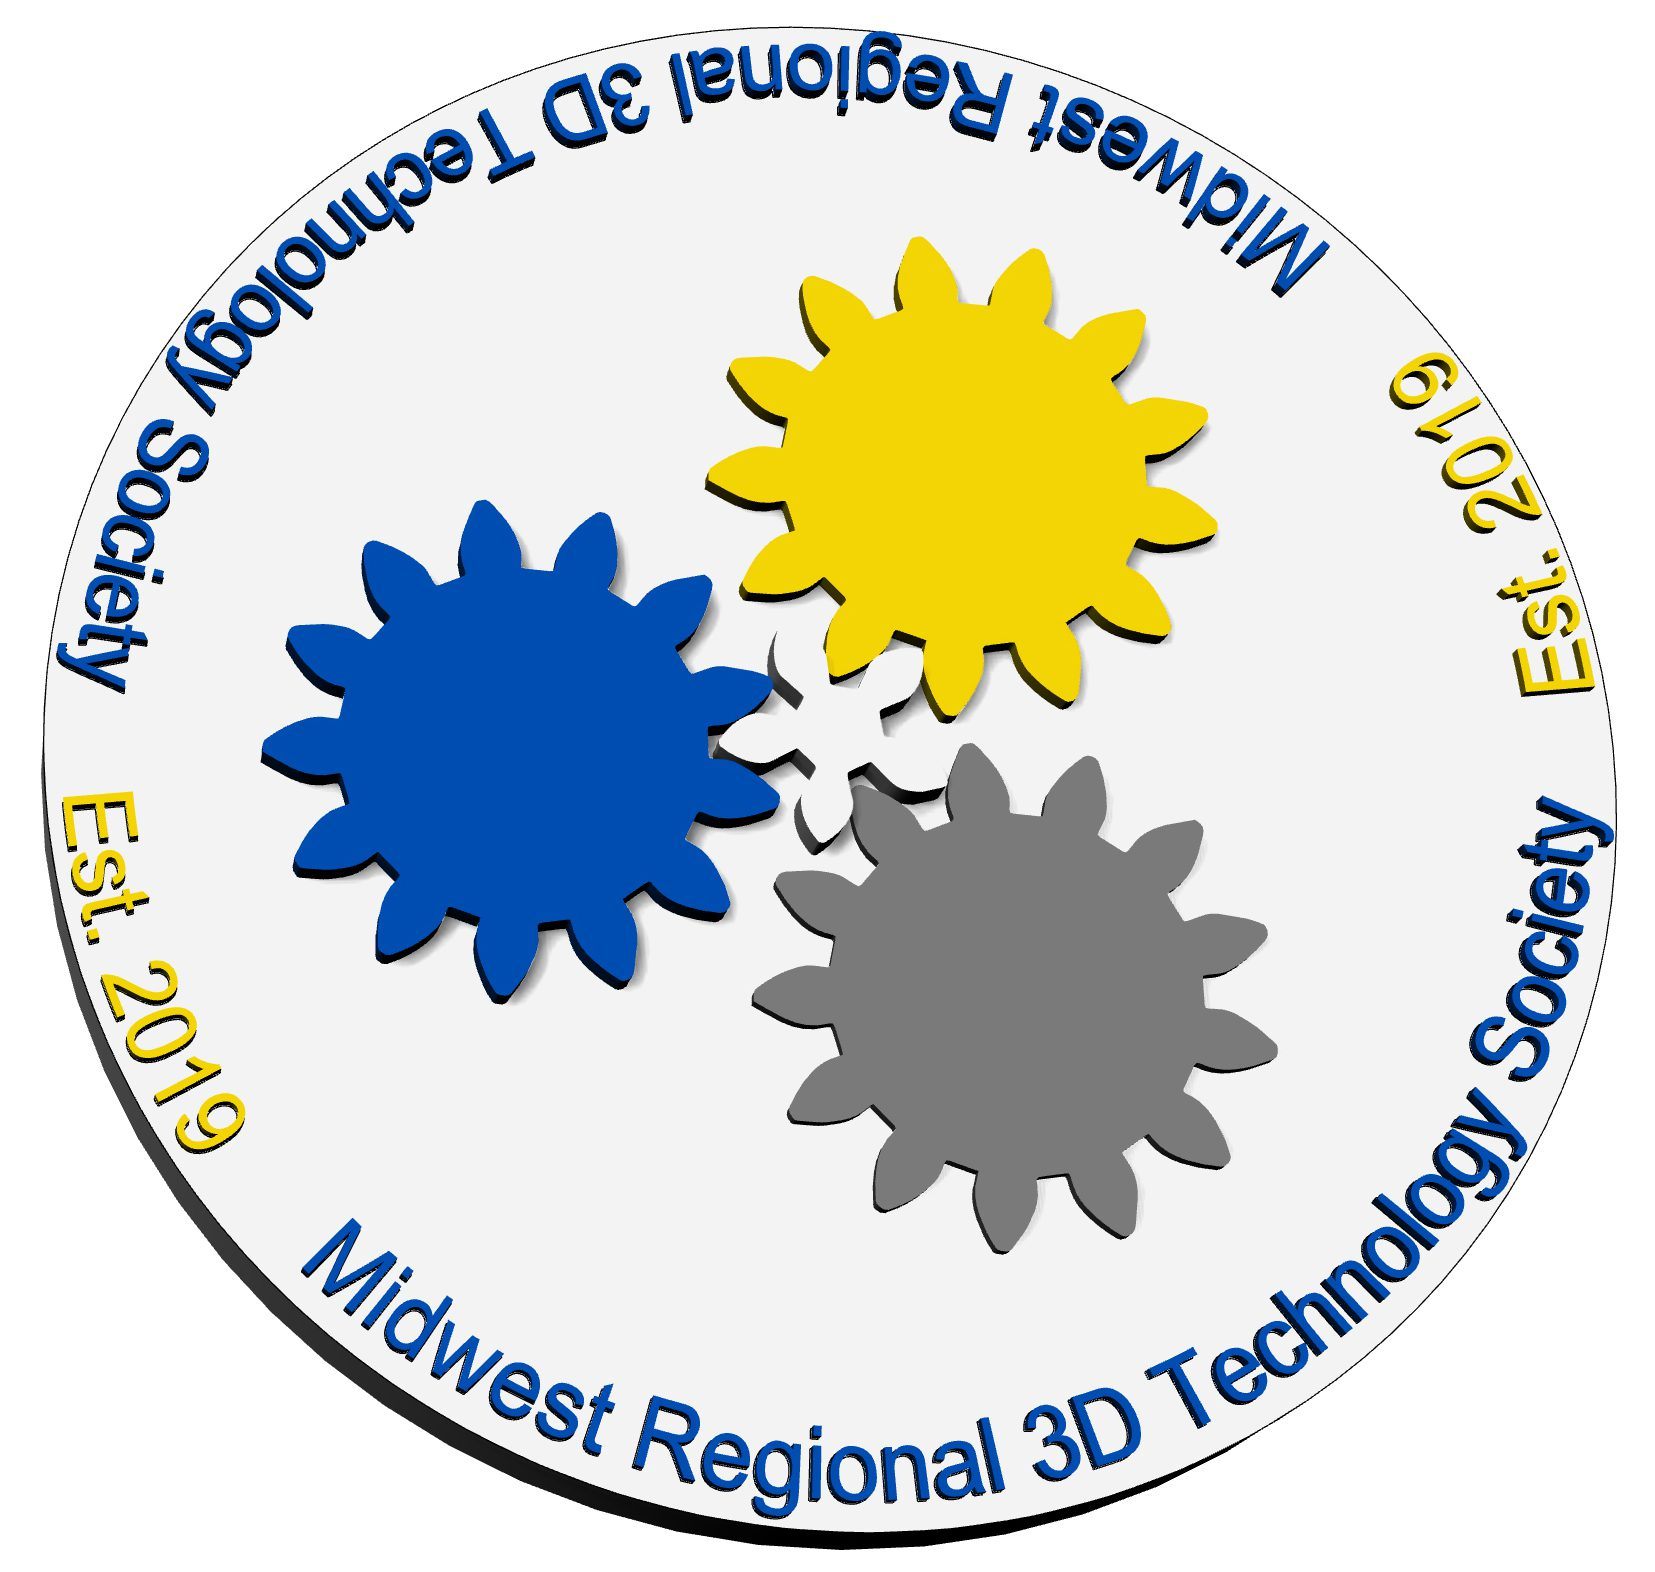 Midwest Regional 3D Tech Society 20